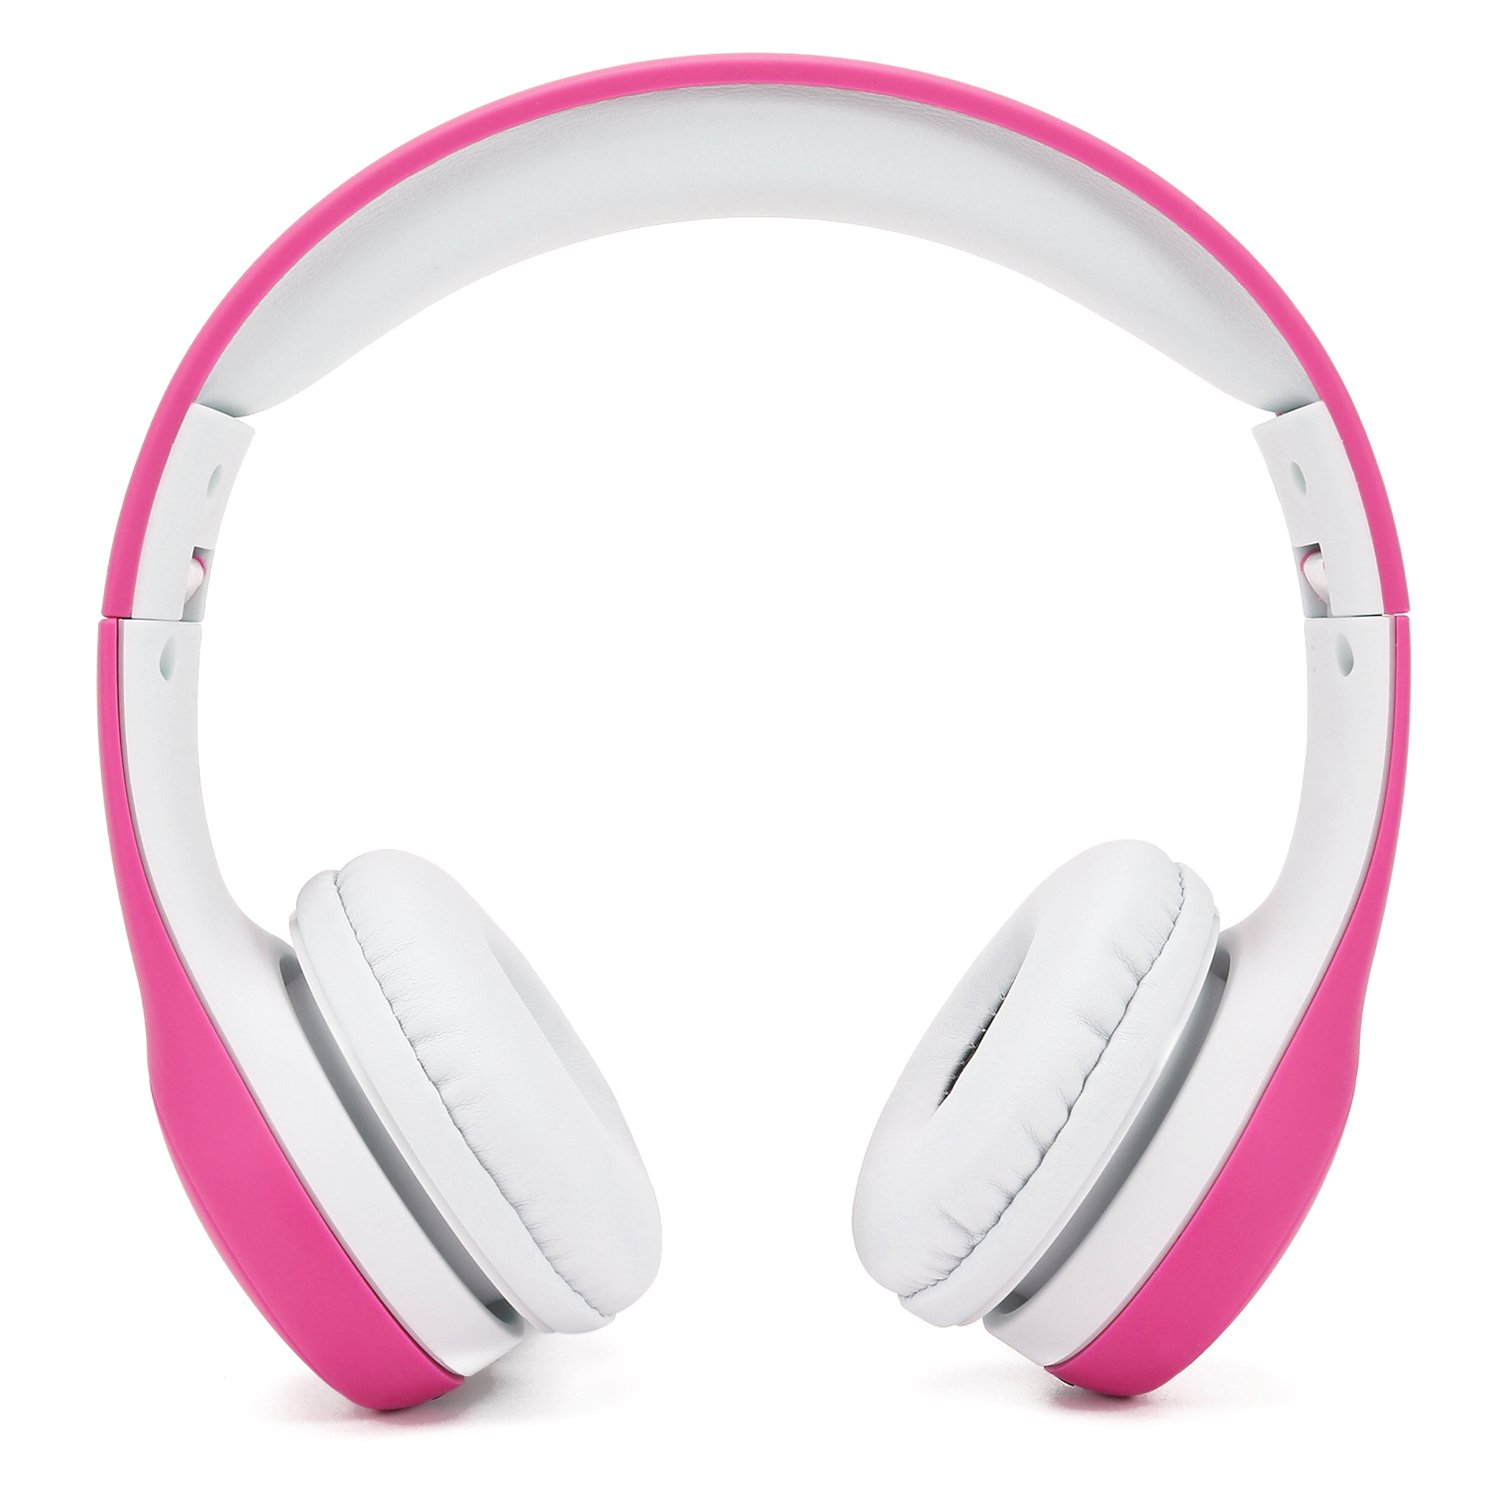 Soblue Kids Headphones, On-Ear Headsets Volume Limited, Adjustable Headband, Durable and Removable Nylon 3.5mm Audio Jack Cable, Designed for Children Ages of 3-12 (Pink)